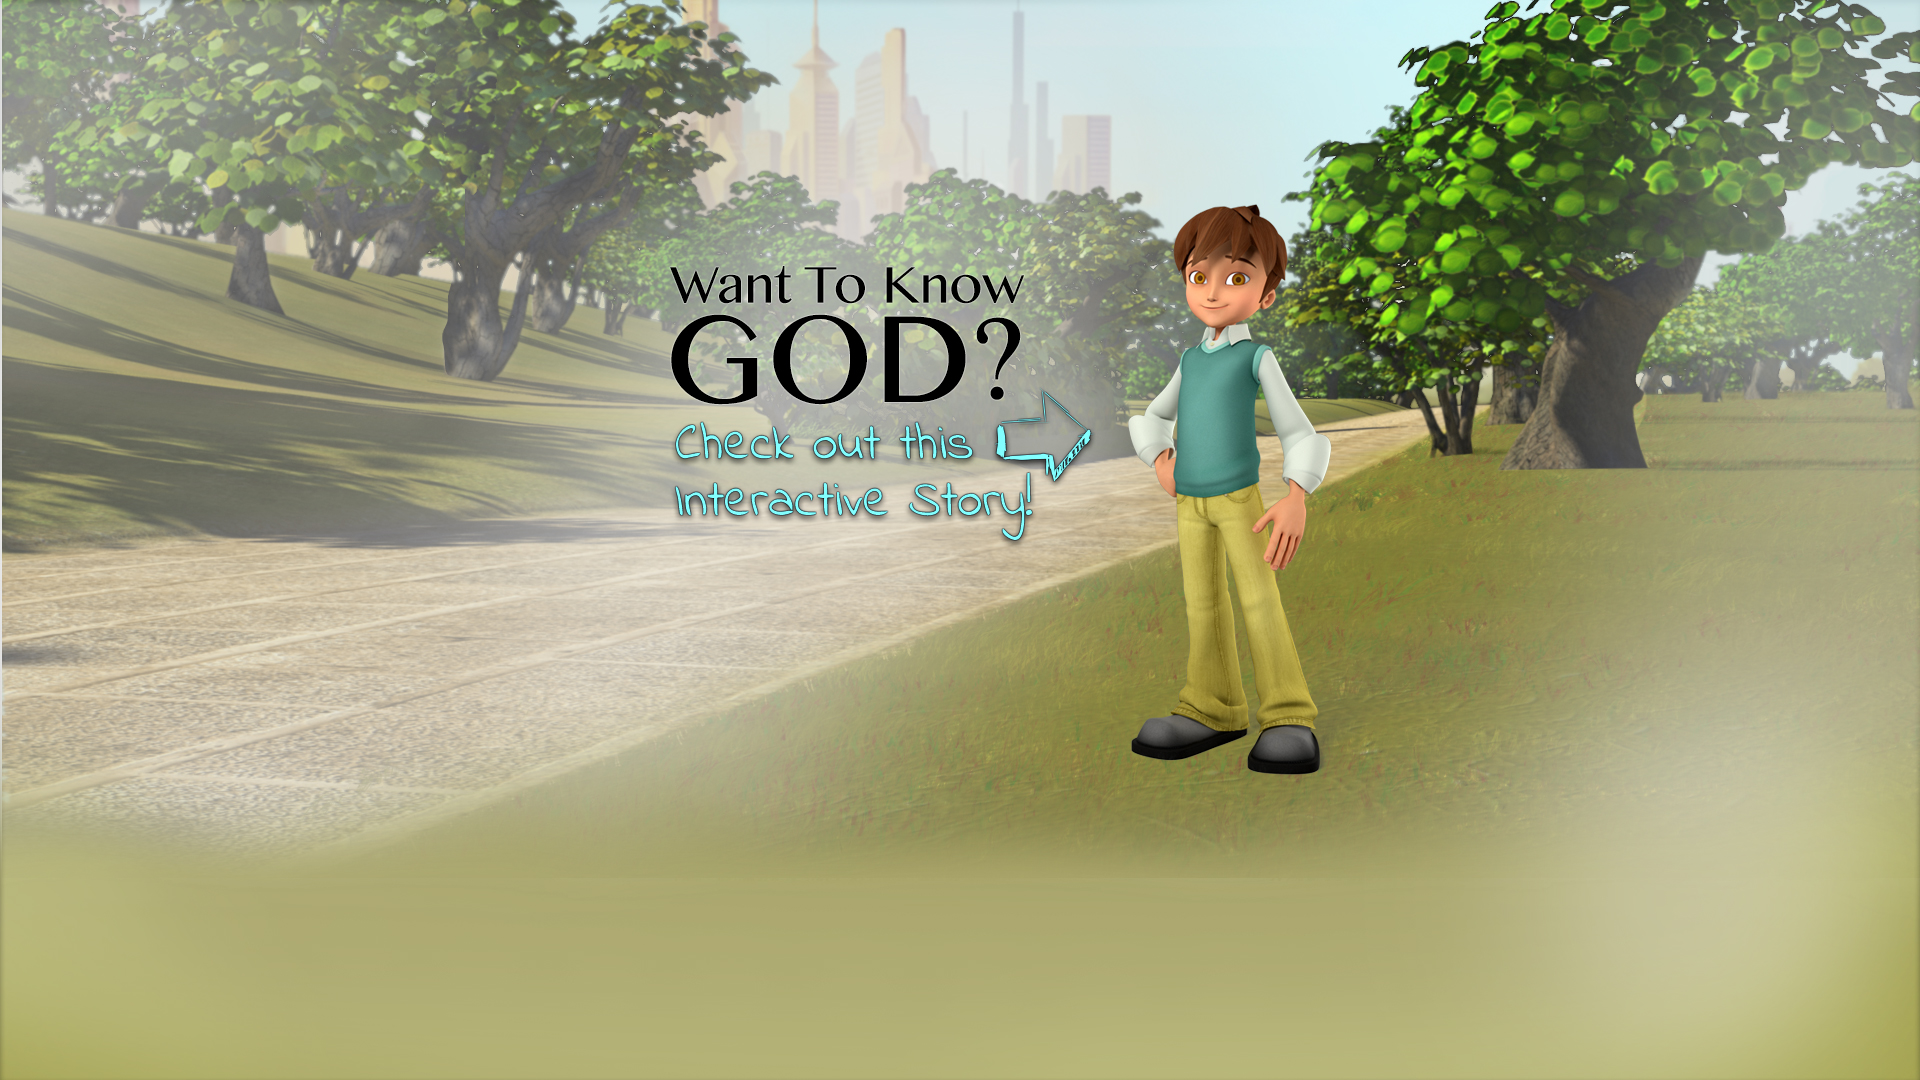 Superbook Kids Website - Free Online Games - Bible-Based Internet ...